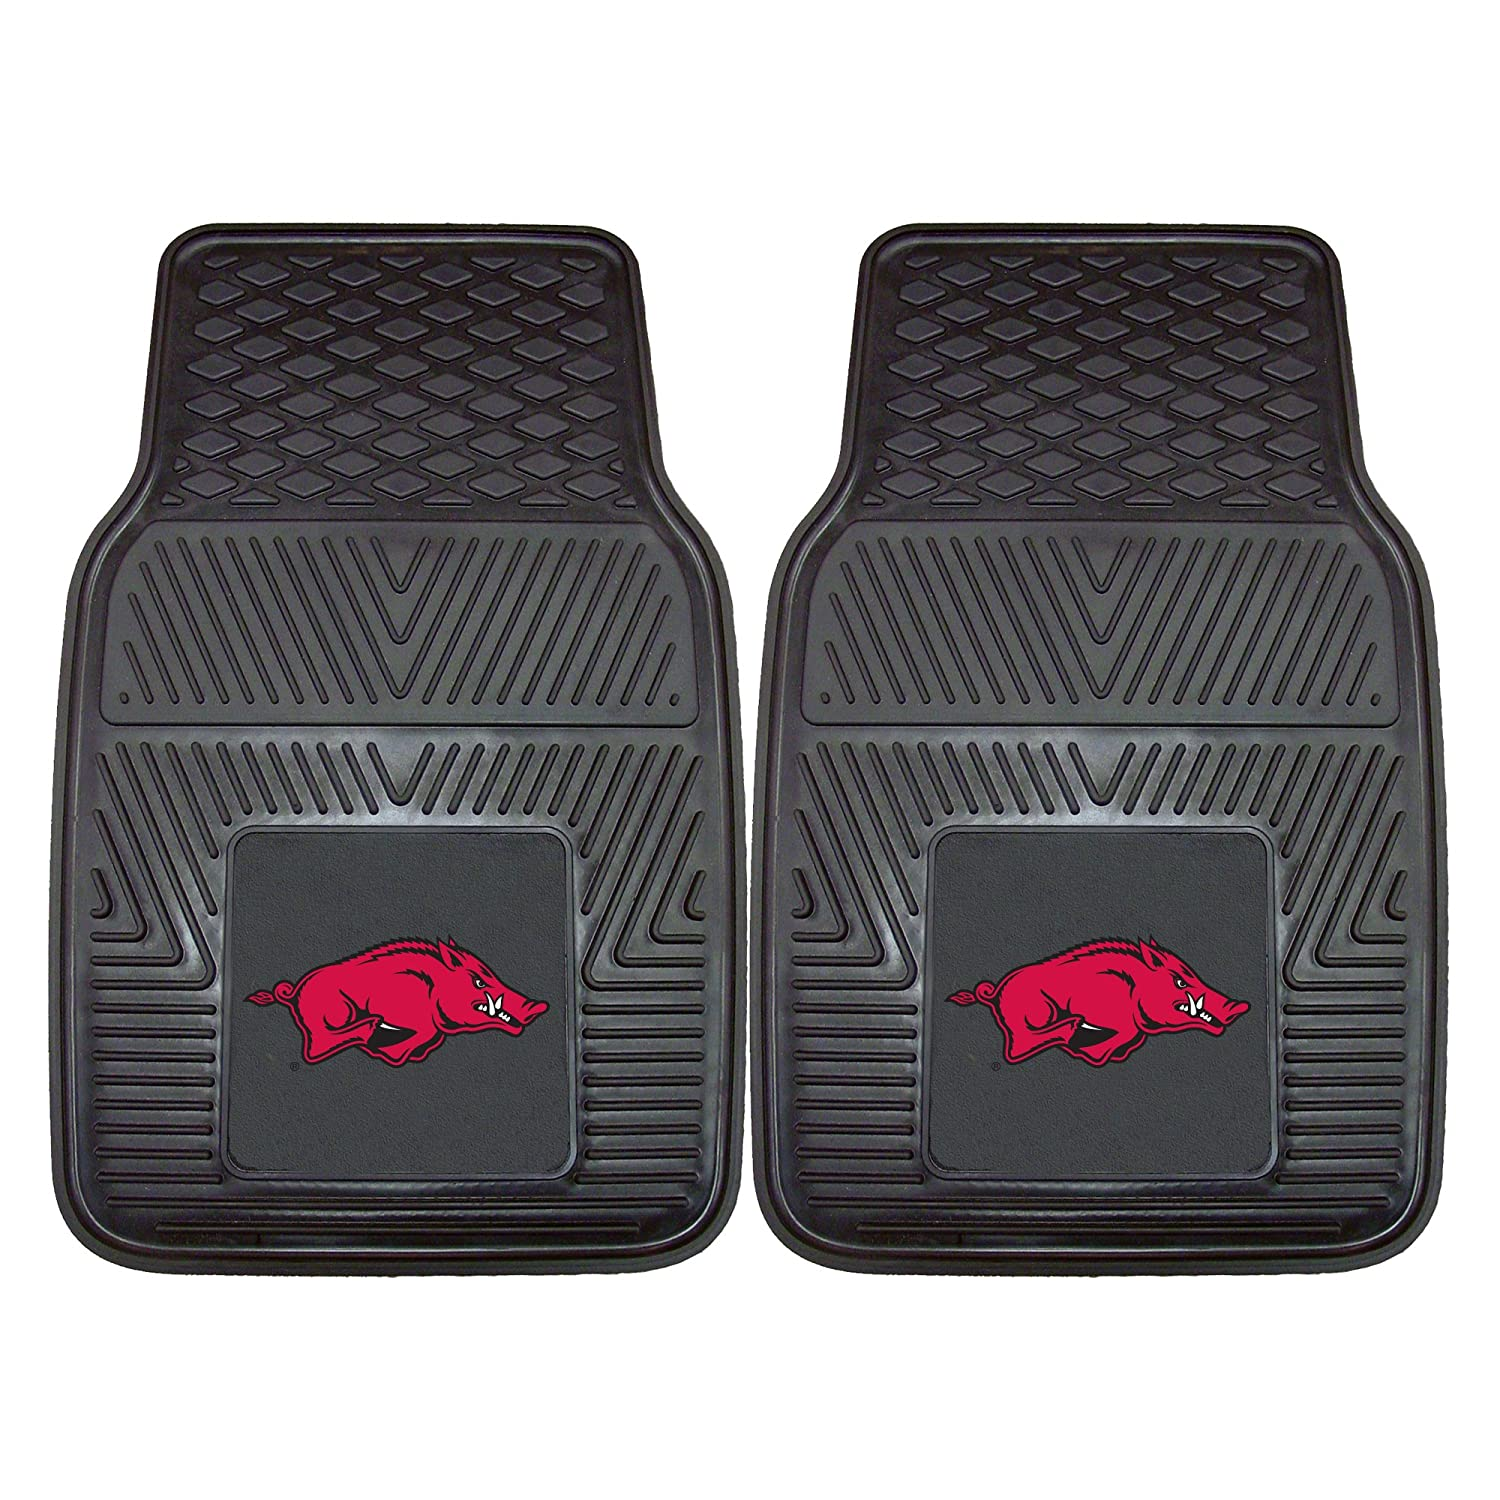 91MDtZDKsfL._SL1500_ Cool Review About 2006 toyota Corolla Floor Mats with Mesmerizing Pictures Cars Review